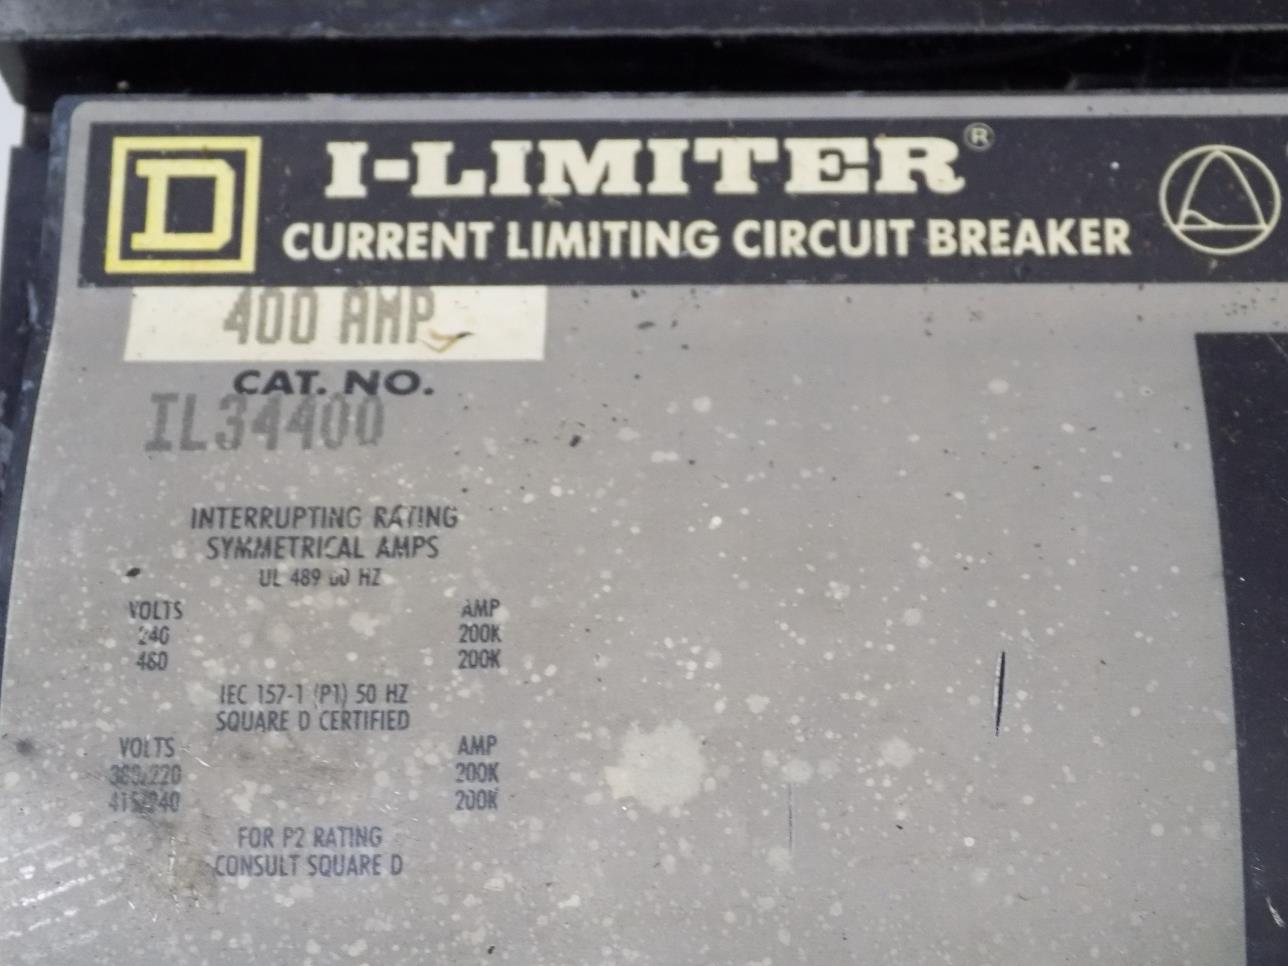 Square D 400amp 3 Pole I Limiter Current Limiting Circuit Breaker Il34400